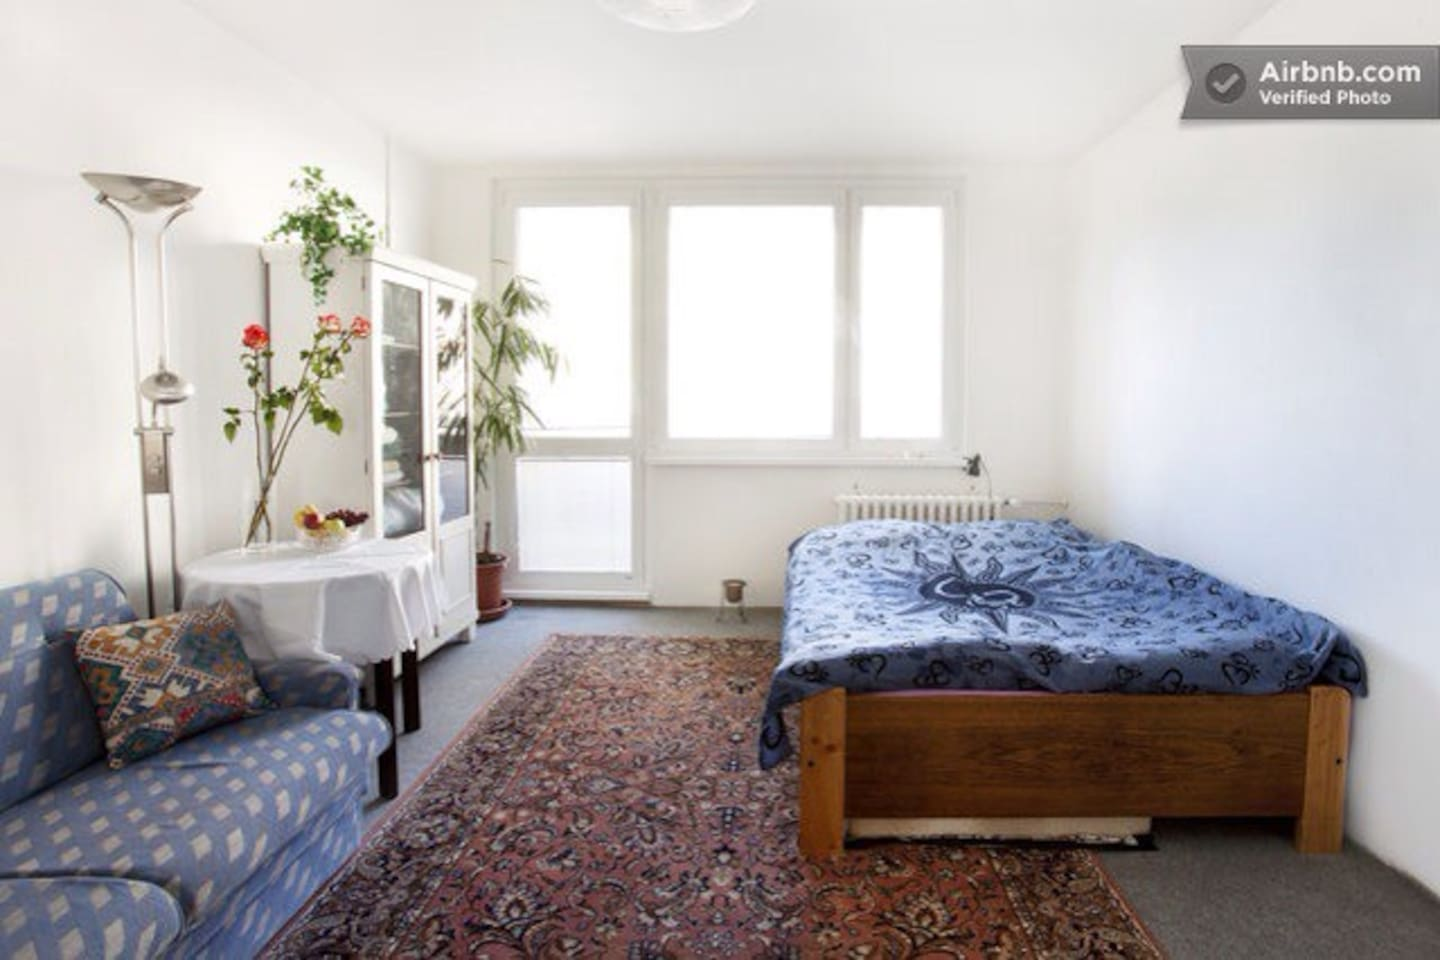 Spatious room with double bed and extendable sofa